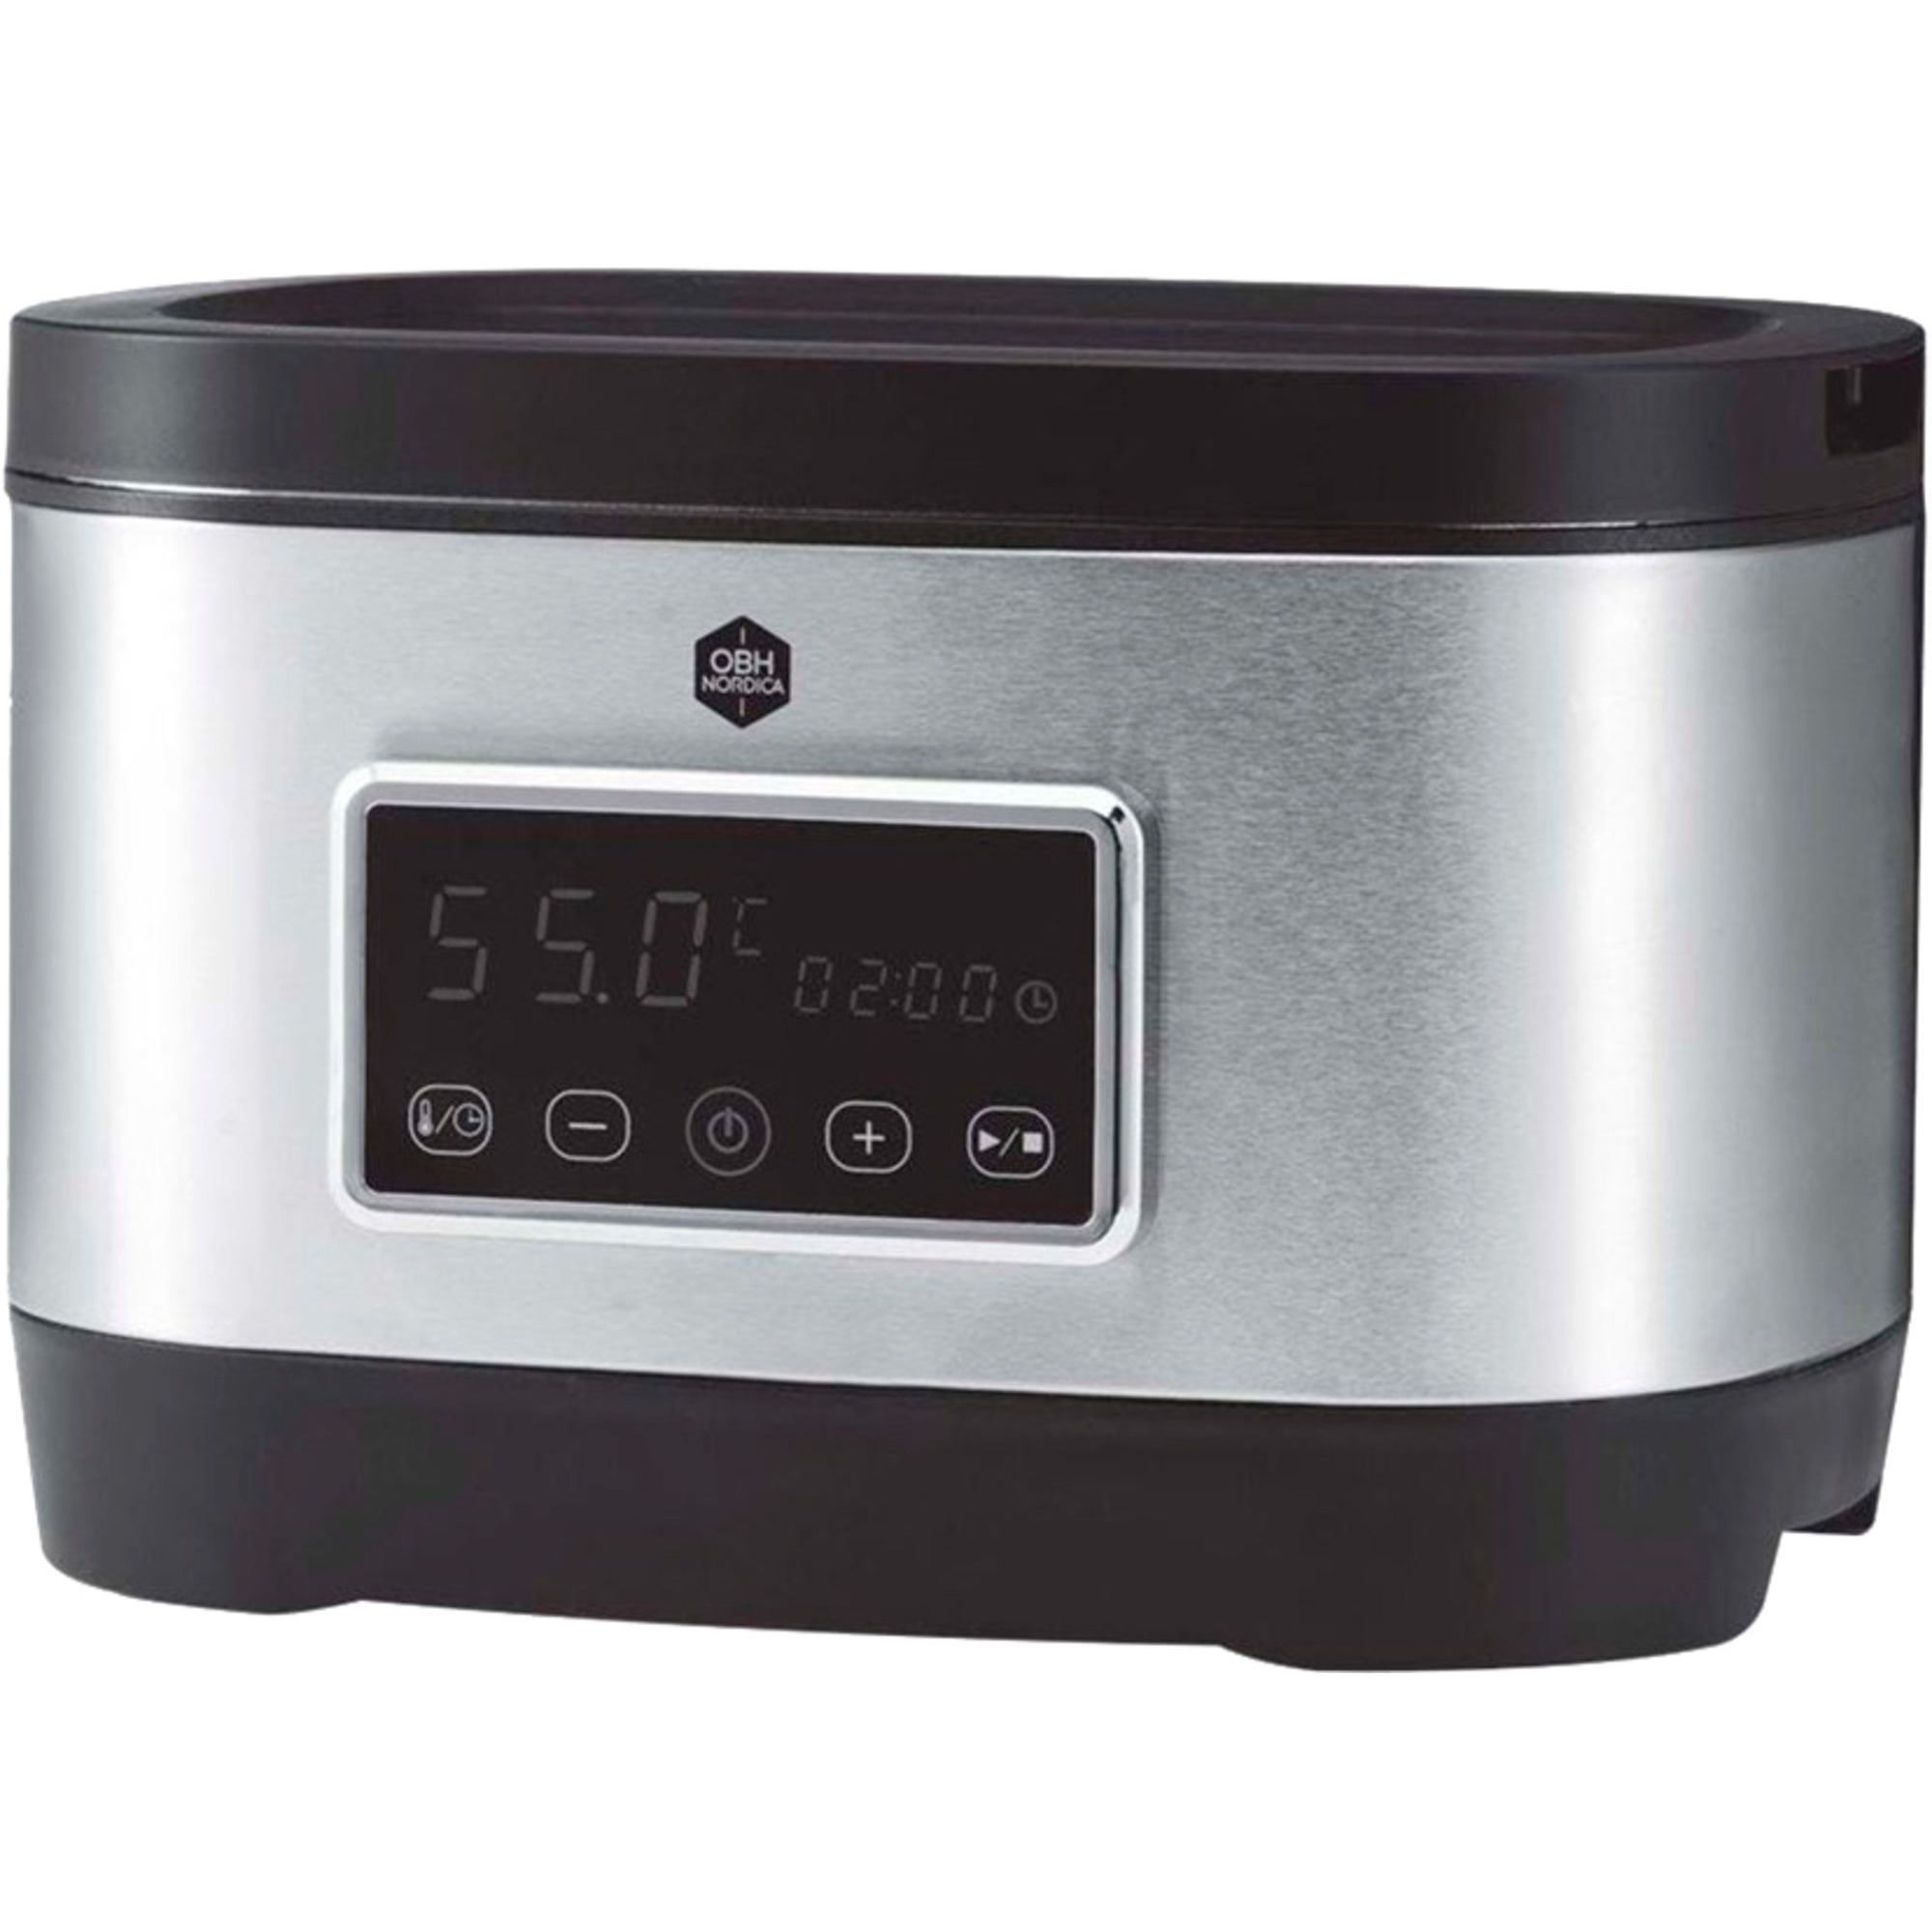 OBH Sous Vide Cooker Magnetic Circulation